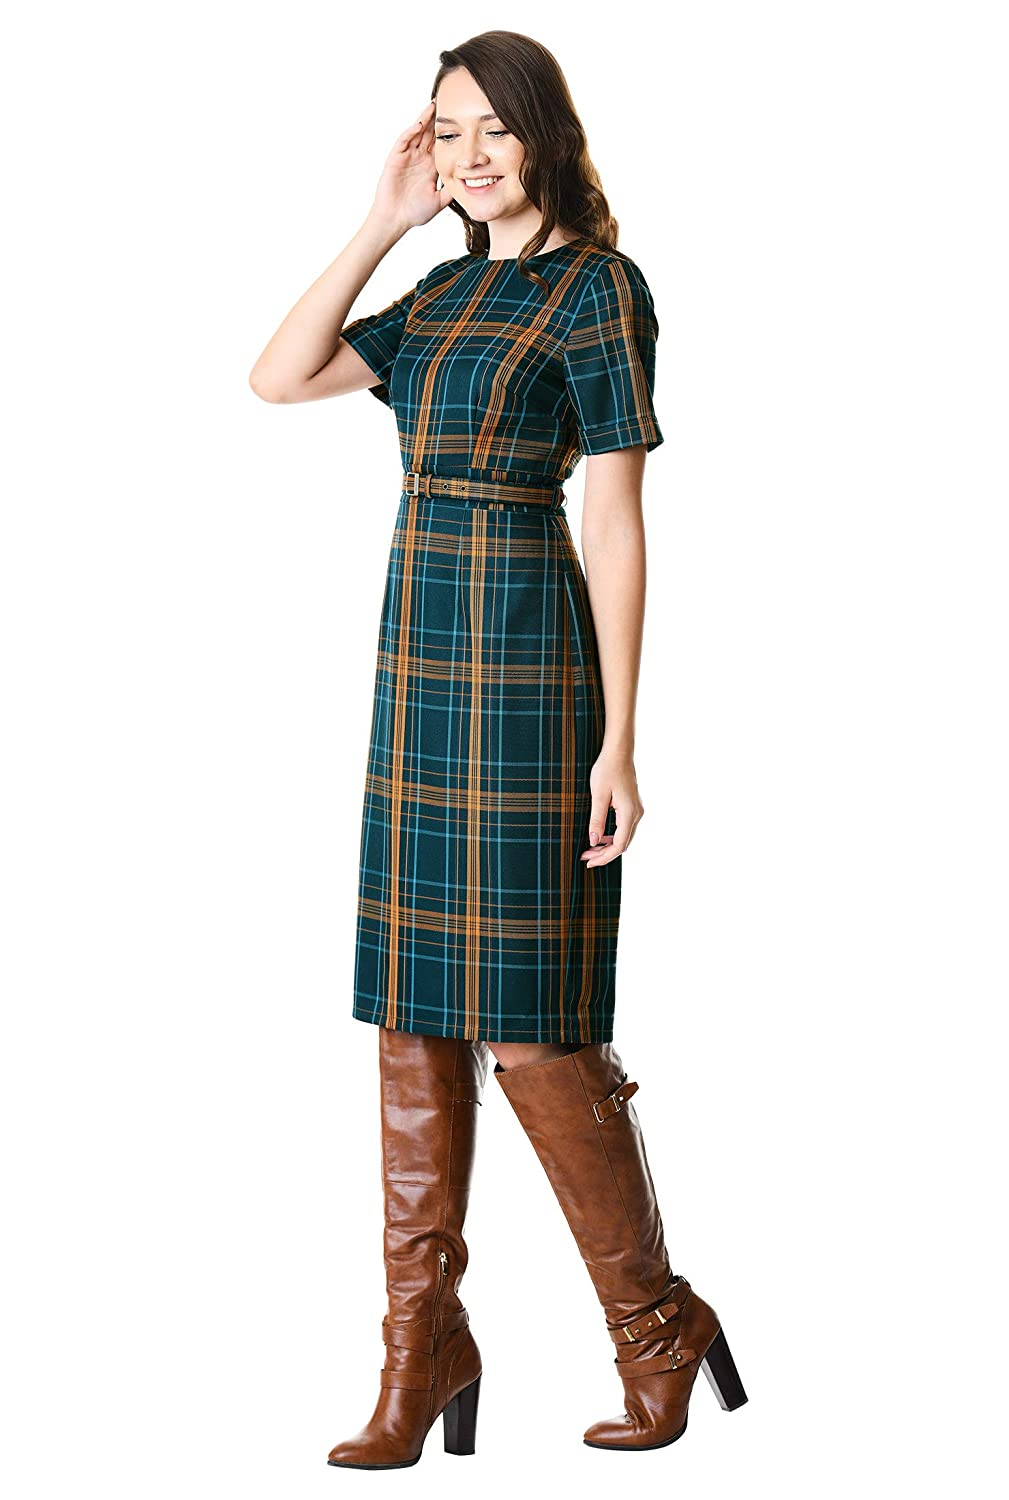 1950s Dresses, 50s Dresses | 1950s Style Dresses eShakti Womens Plaid Suiting Belted Sheath Dress $99.95 AT vintagedancer.com